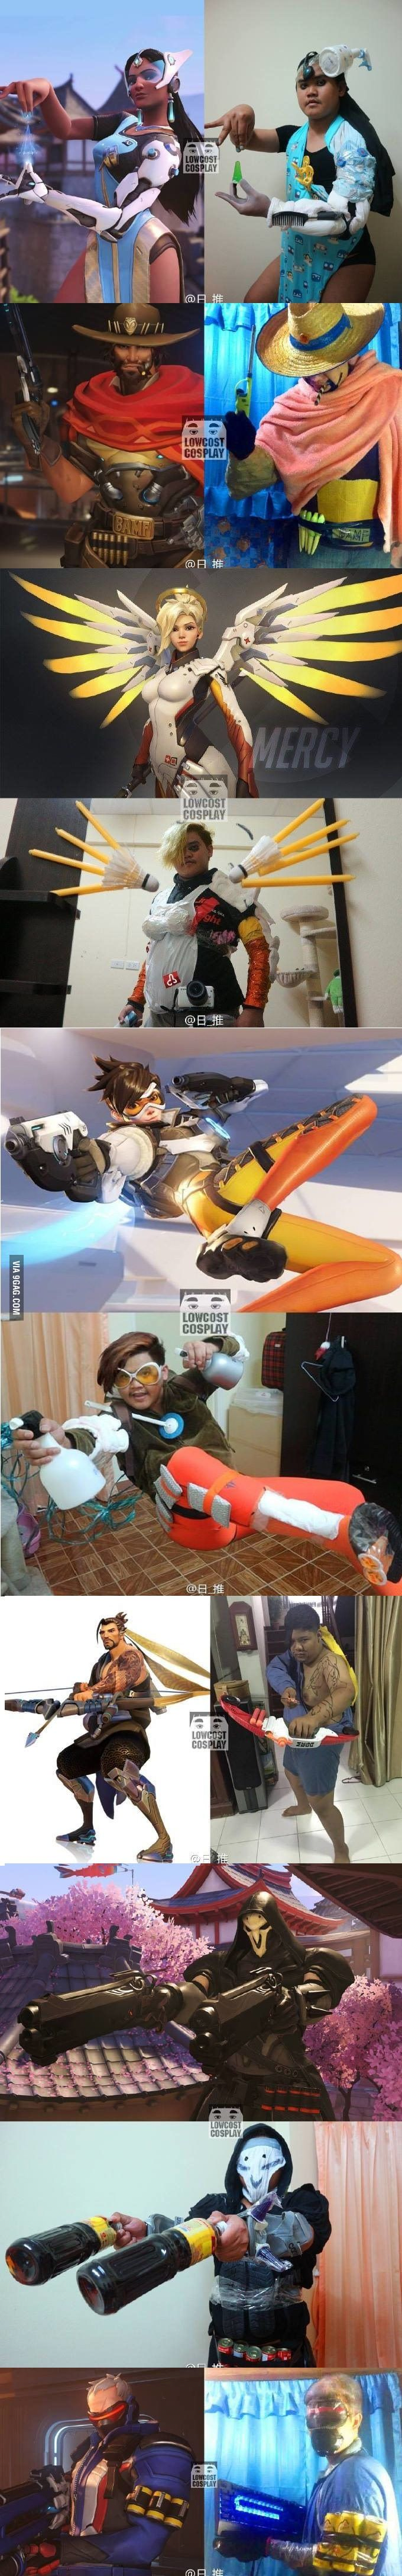 I hear you guys like Overwatch and cosplay. So here is some Overwatch cosplay. (By lowcost cosplay)